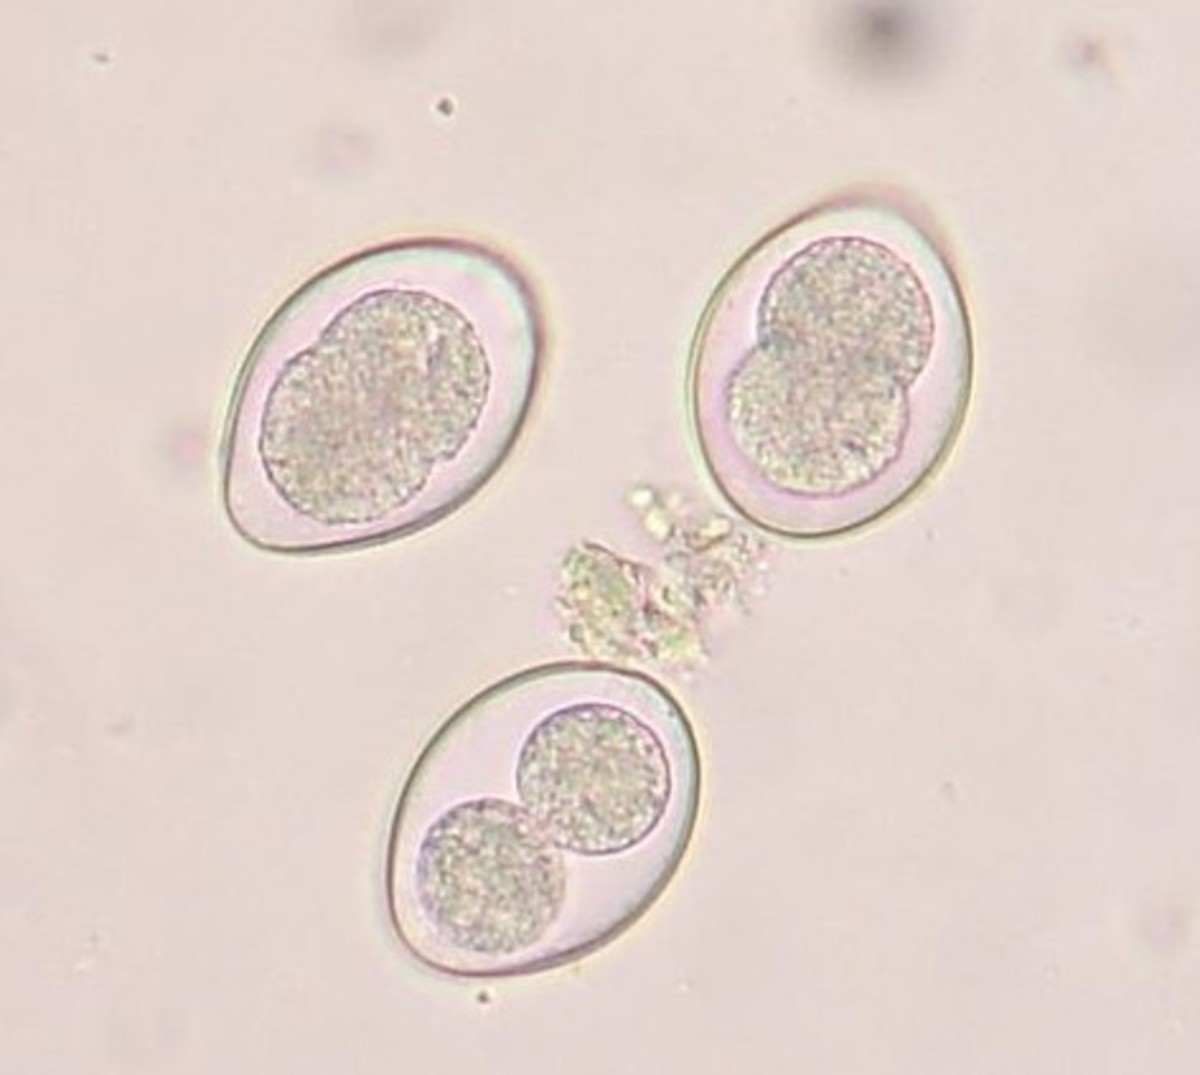 Coccidia oocysts of a cat under microscope